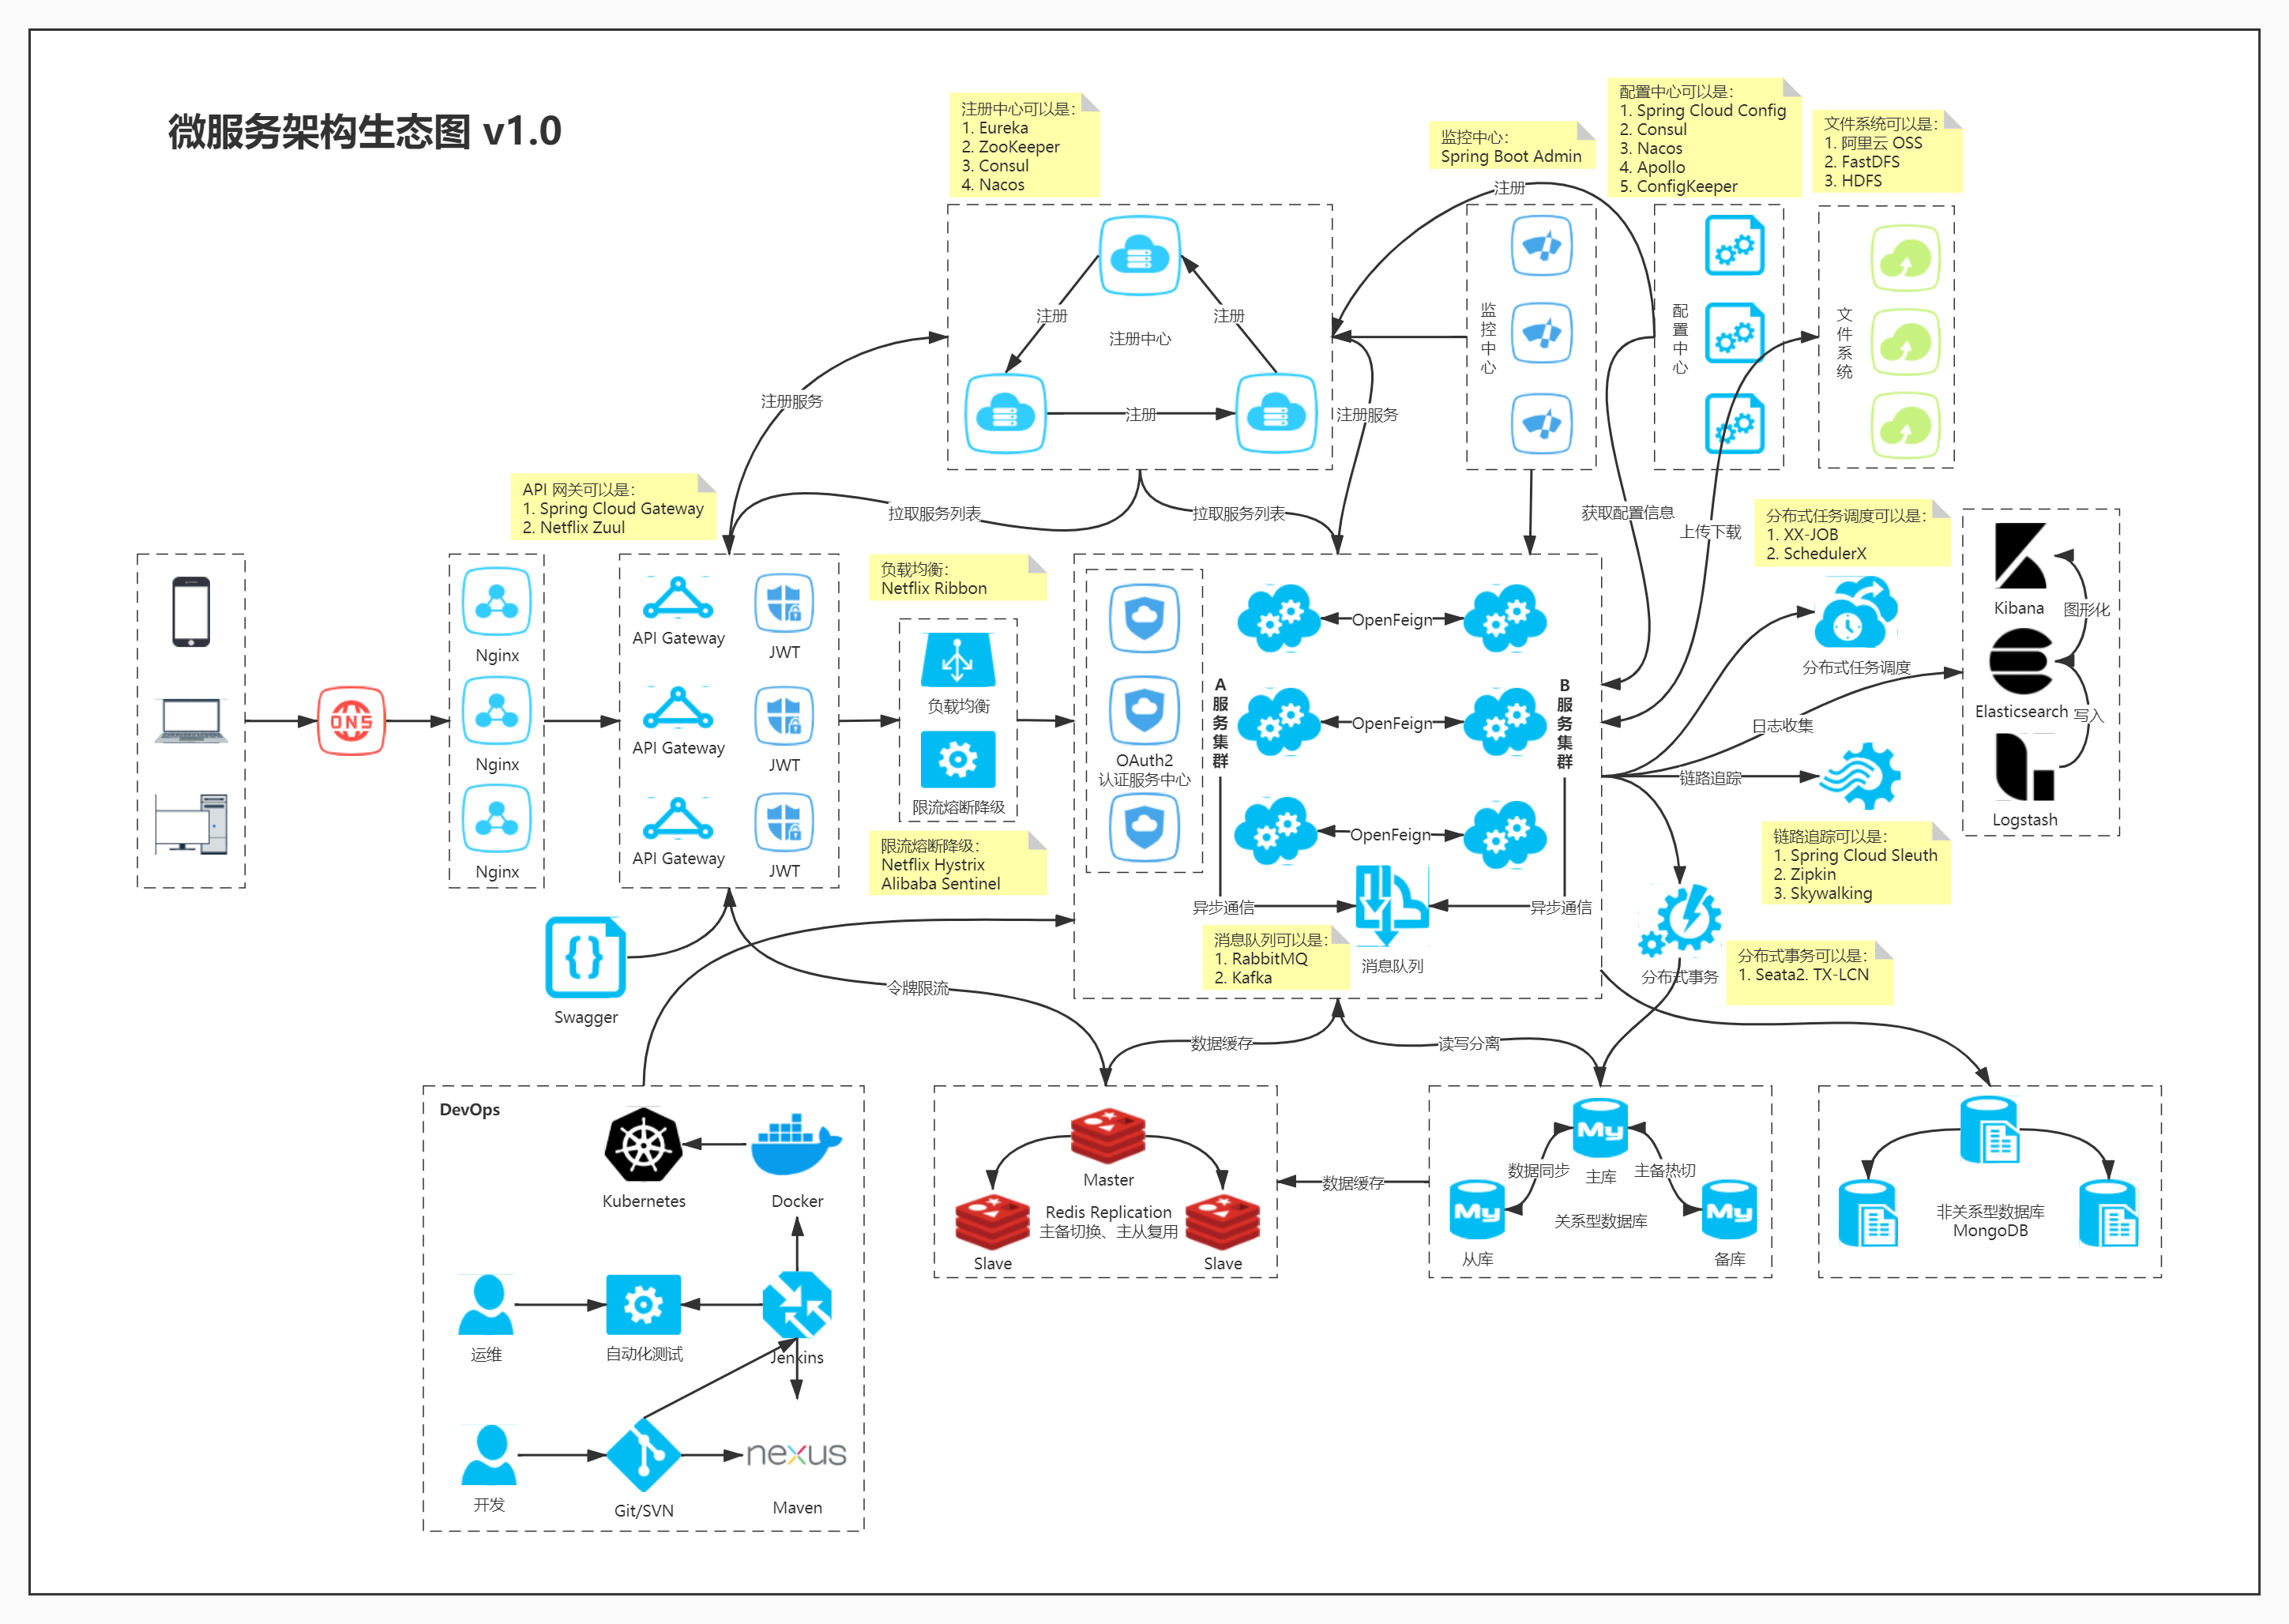 /resources/articles/spring/spring-cloud/microservices/微服务架构生态图-v1.0.jpg